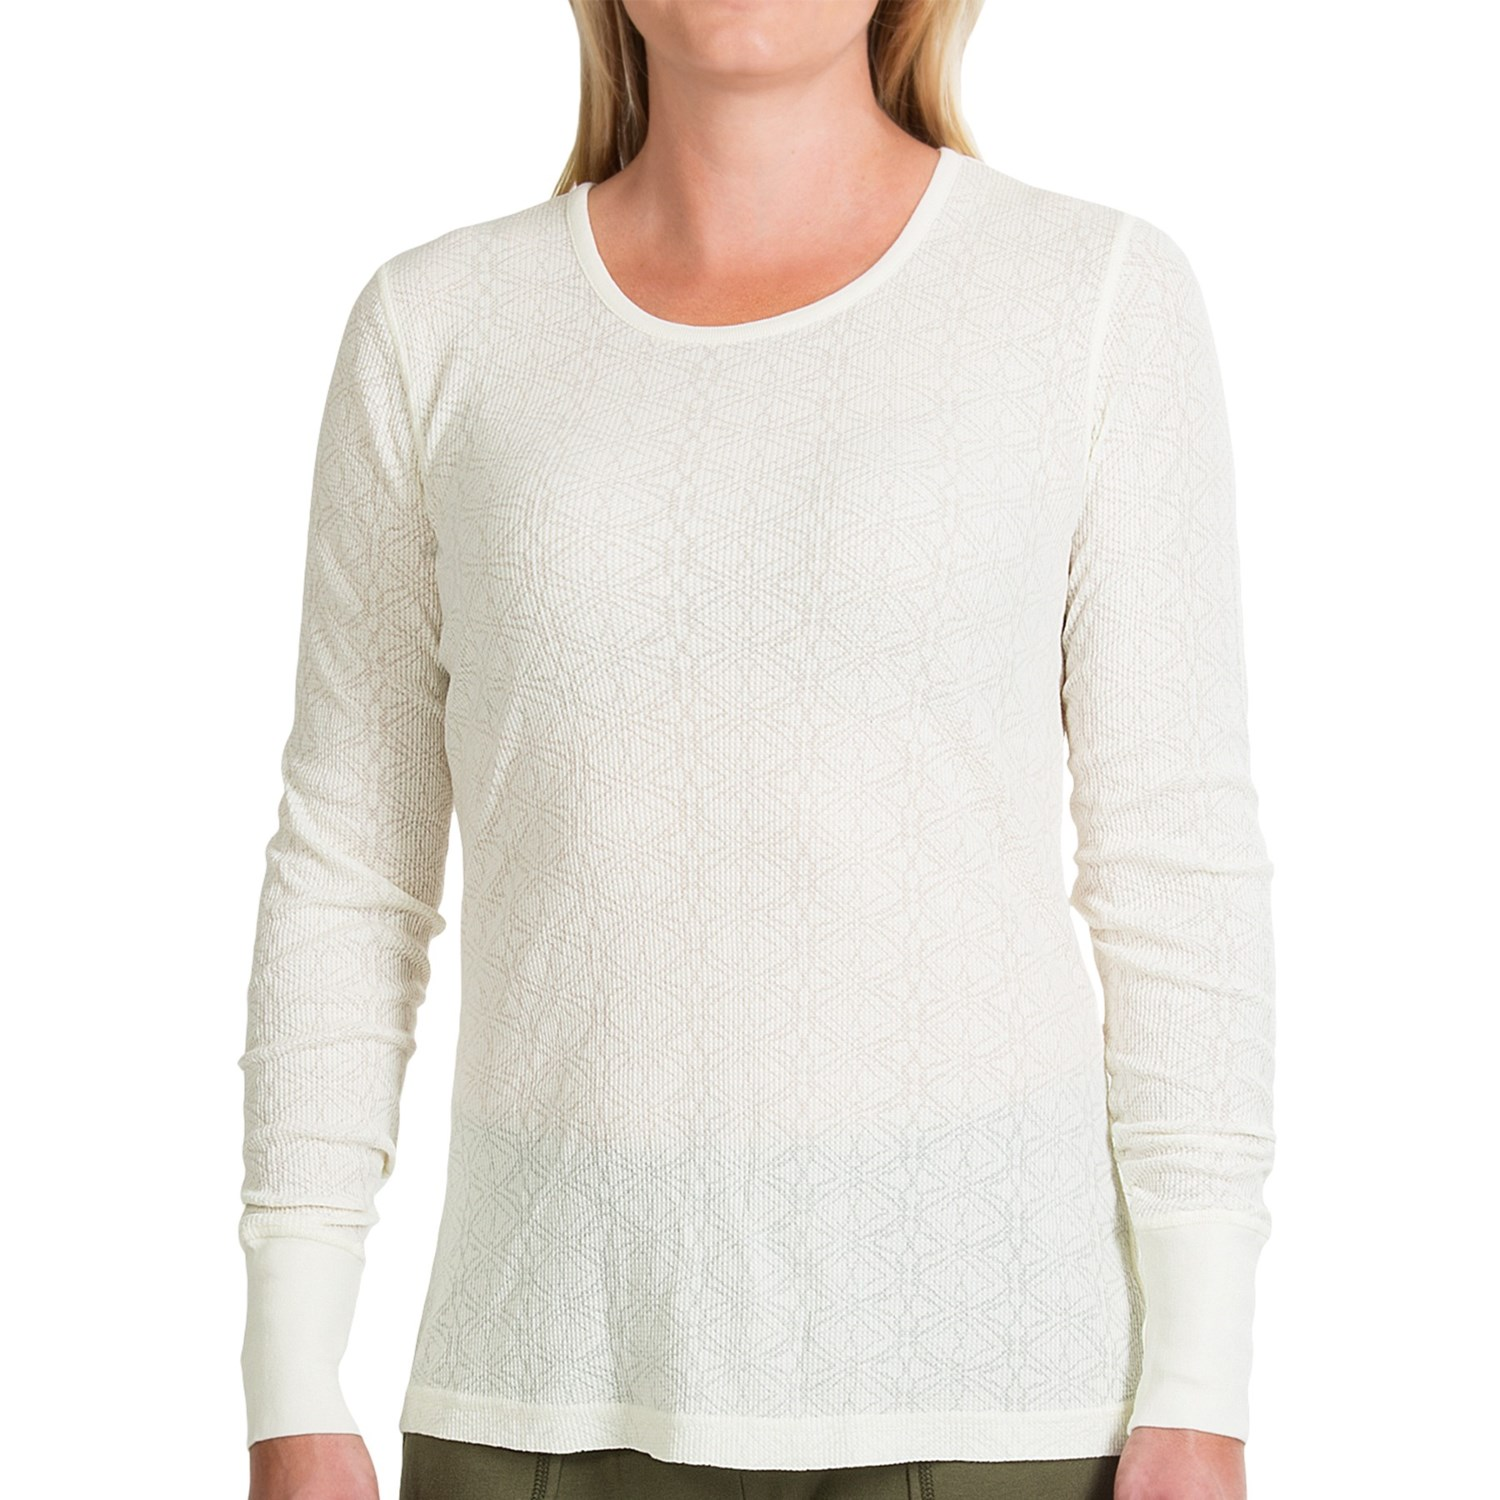 Clothes stores. Thermal clothing for women